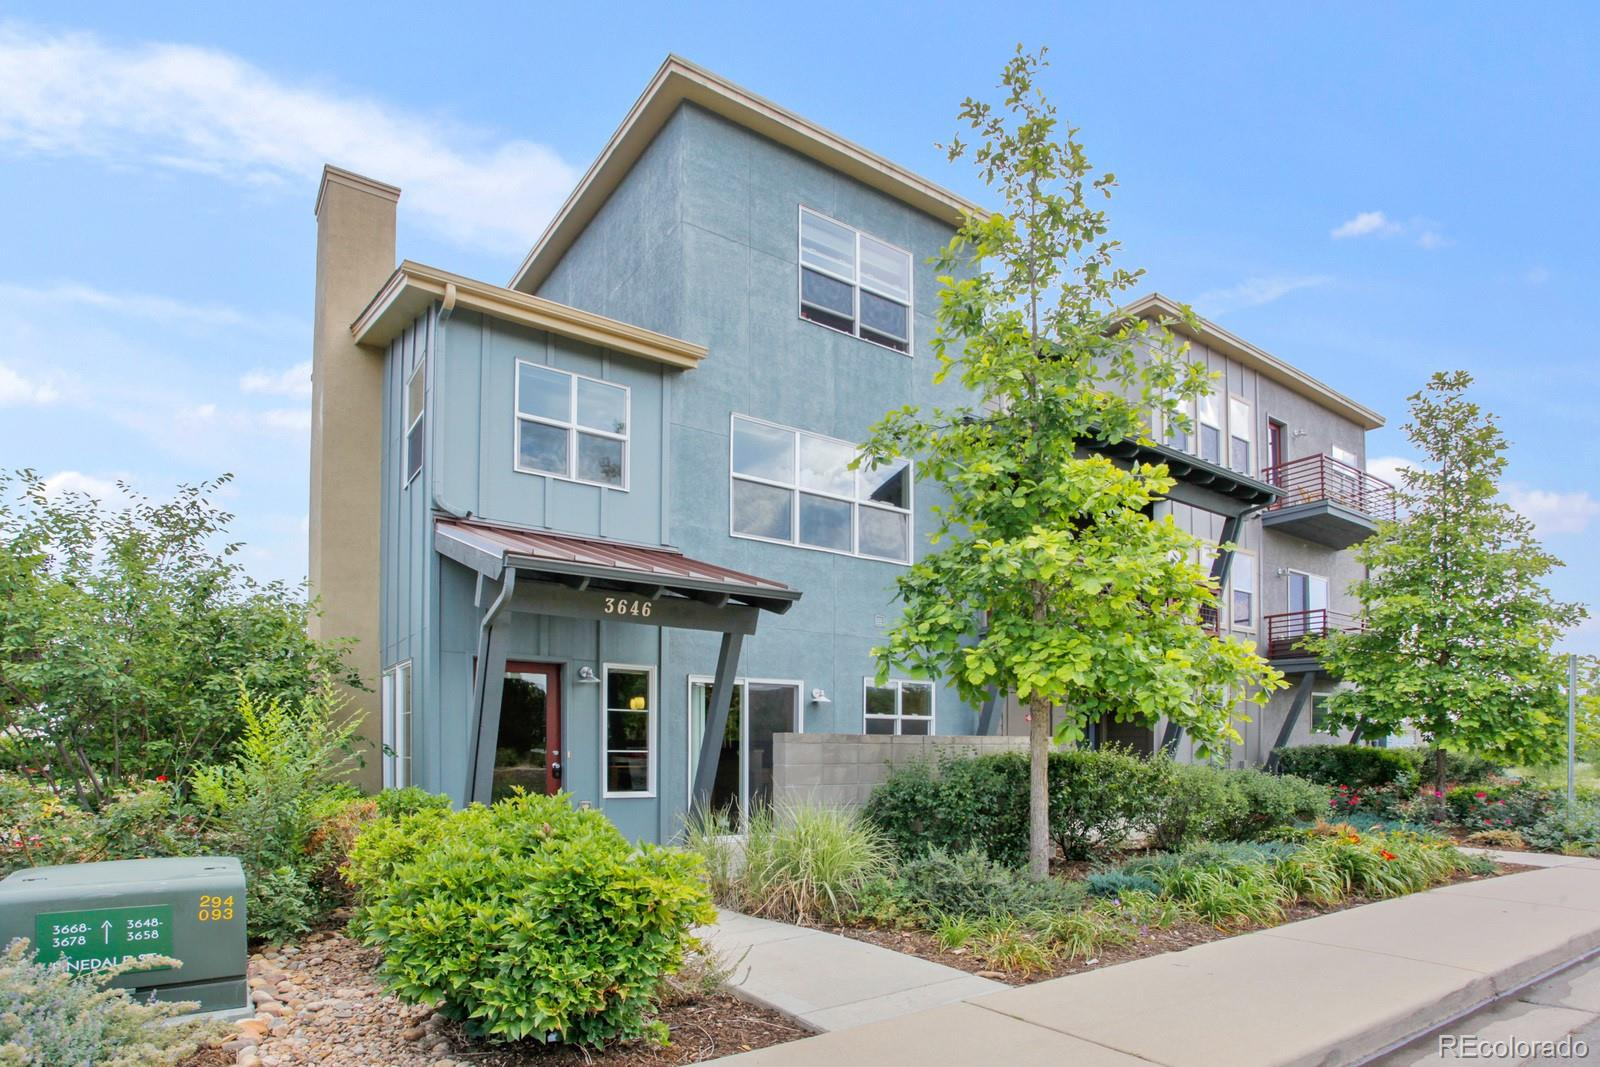 3646 Pinedale Street, Boulder, CO  80301 - Featured Property